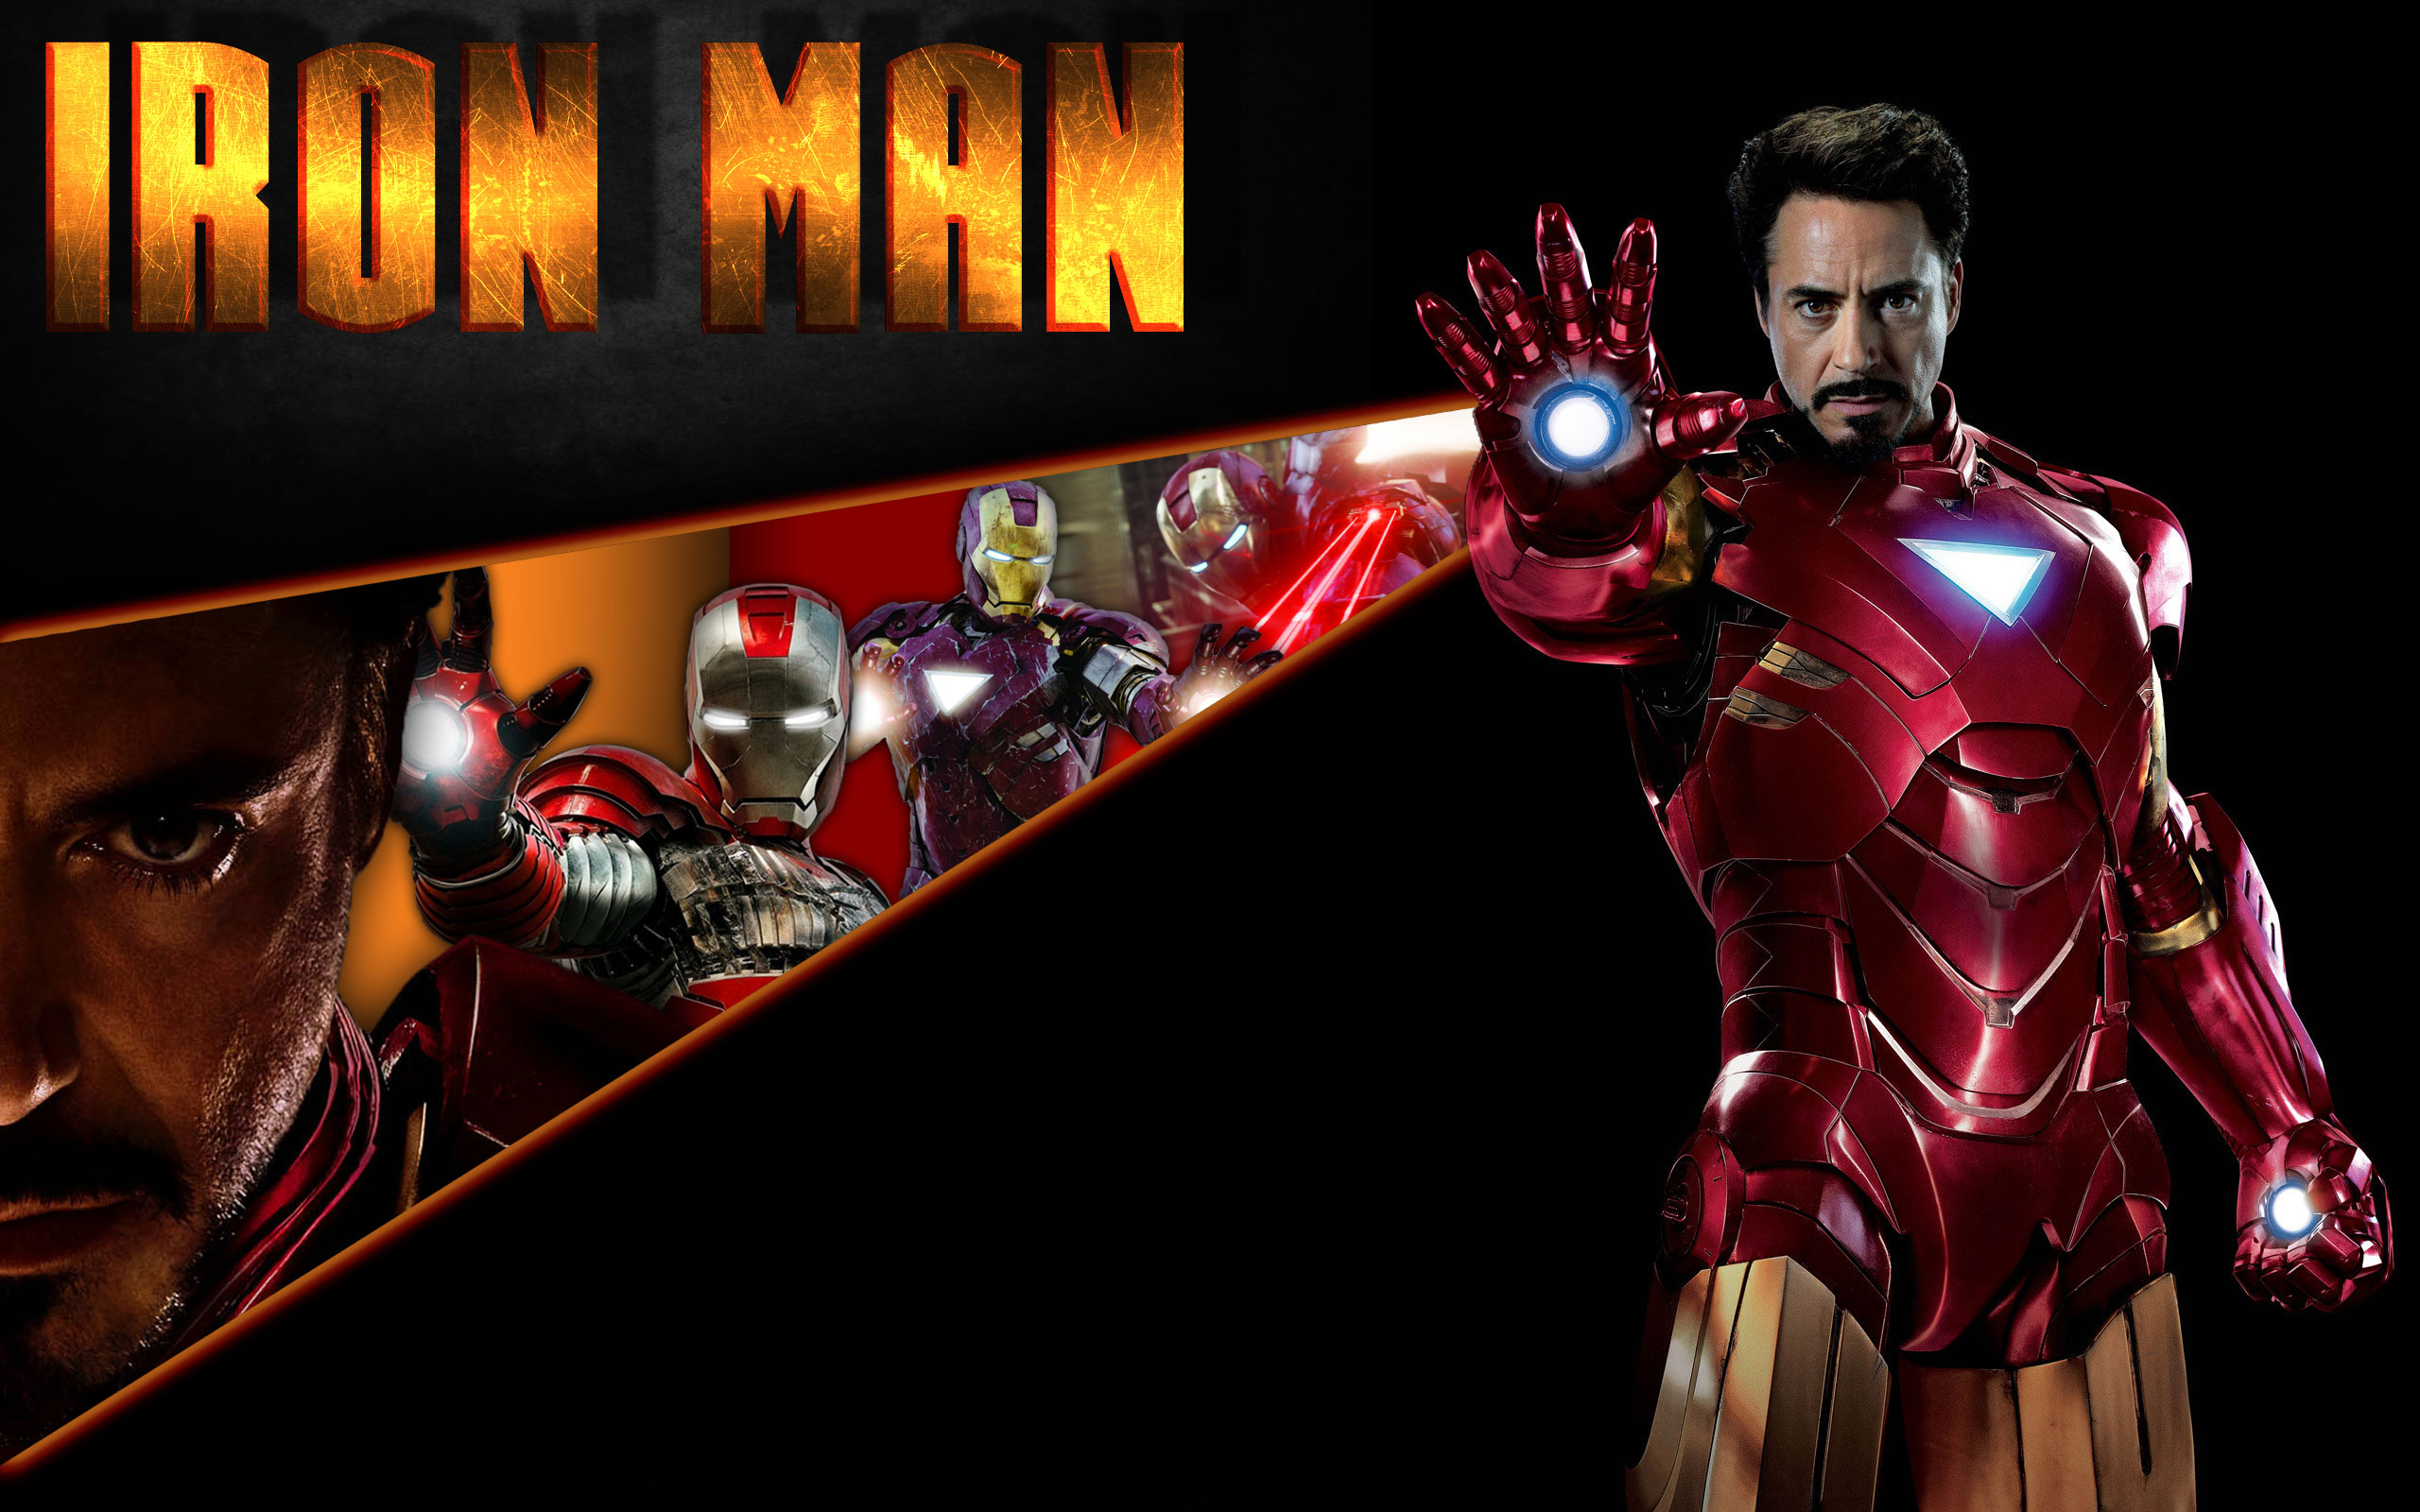 iron-man-tony-stark-wallpapers-hd-download | wallpaper.wiki